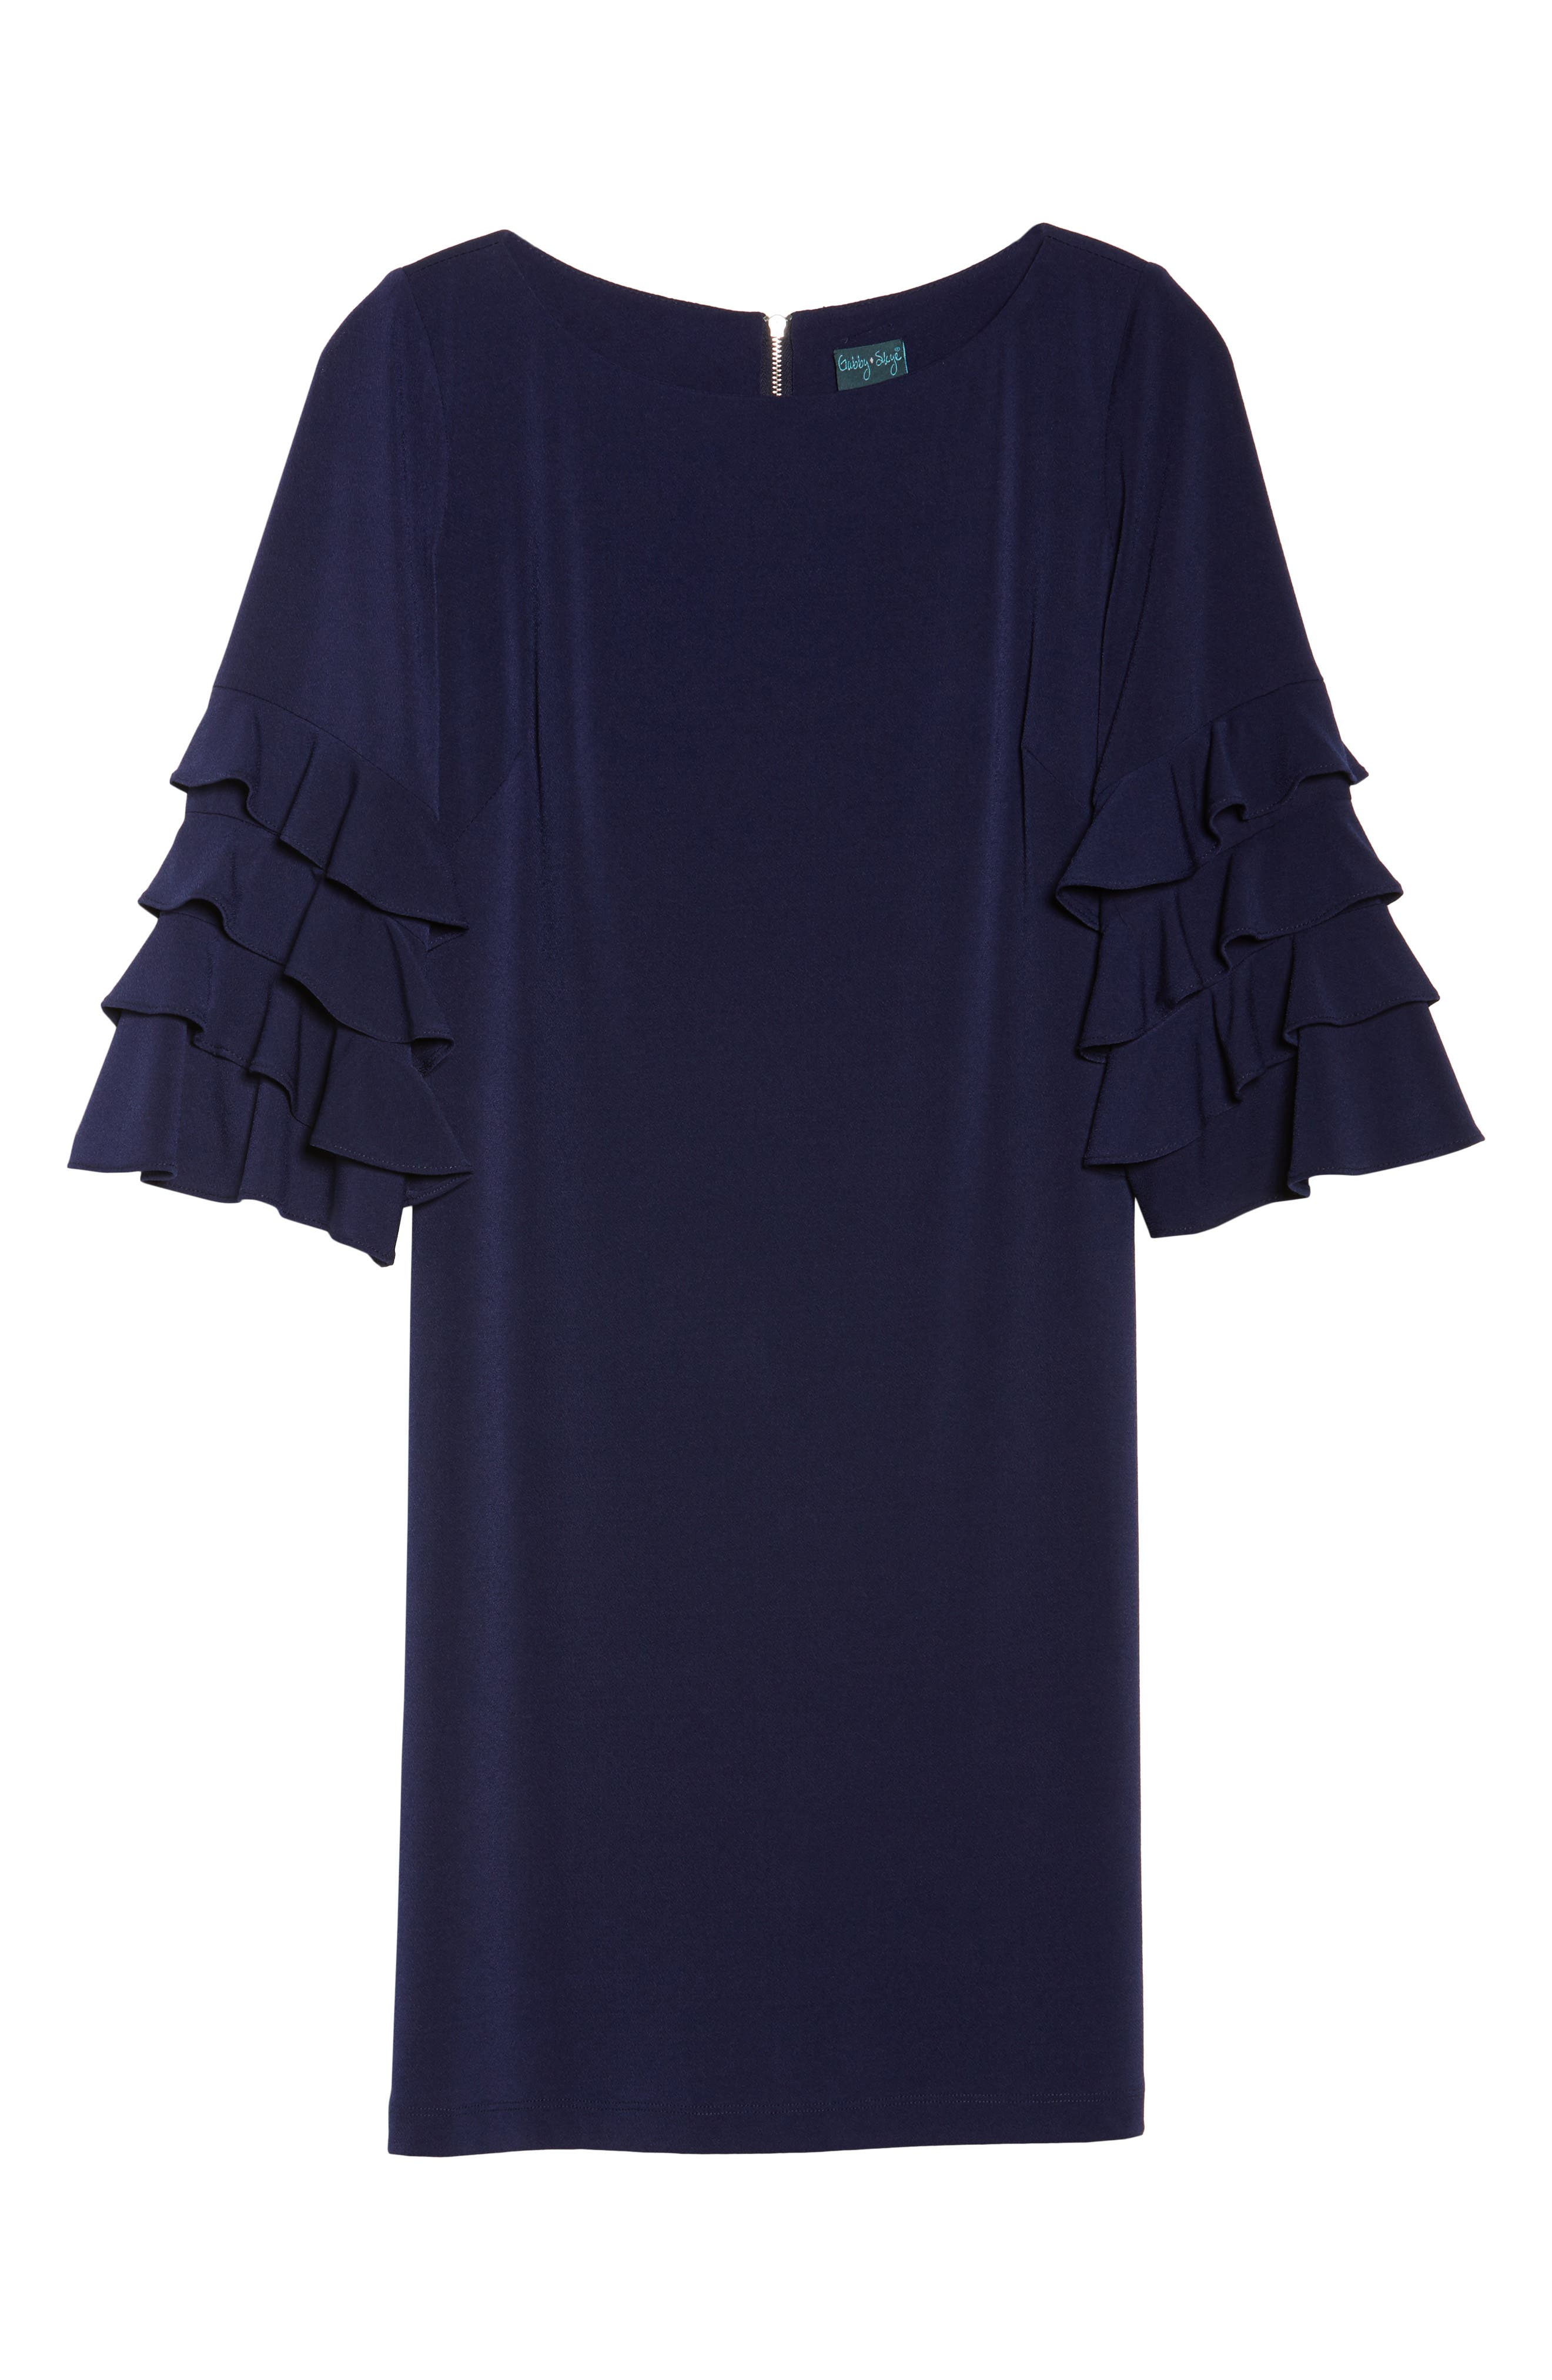 Tiered Sleeve Crepe Shift Dress,                             Alternate thumbnail 6, color,                             Navy